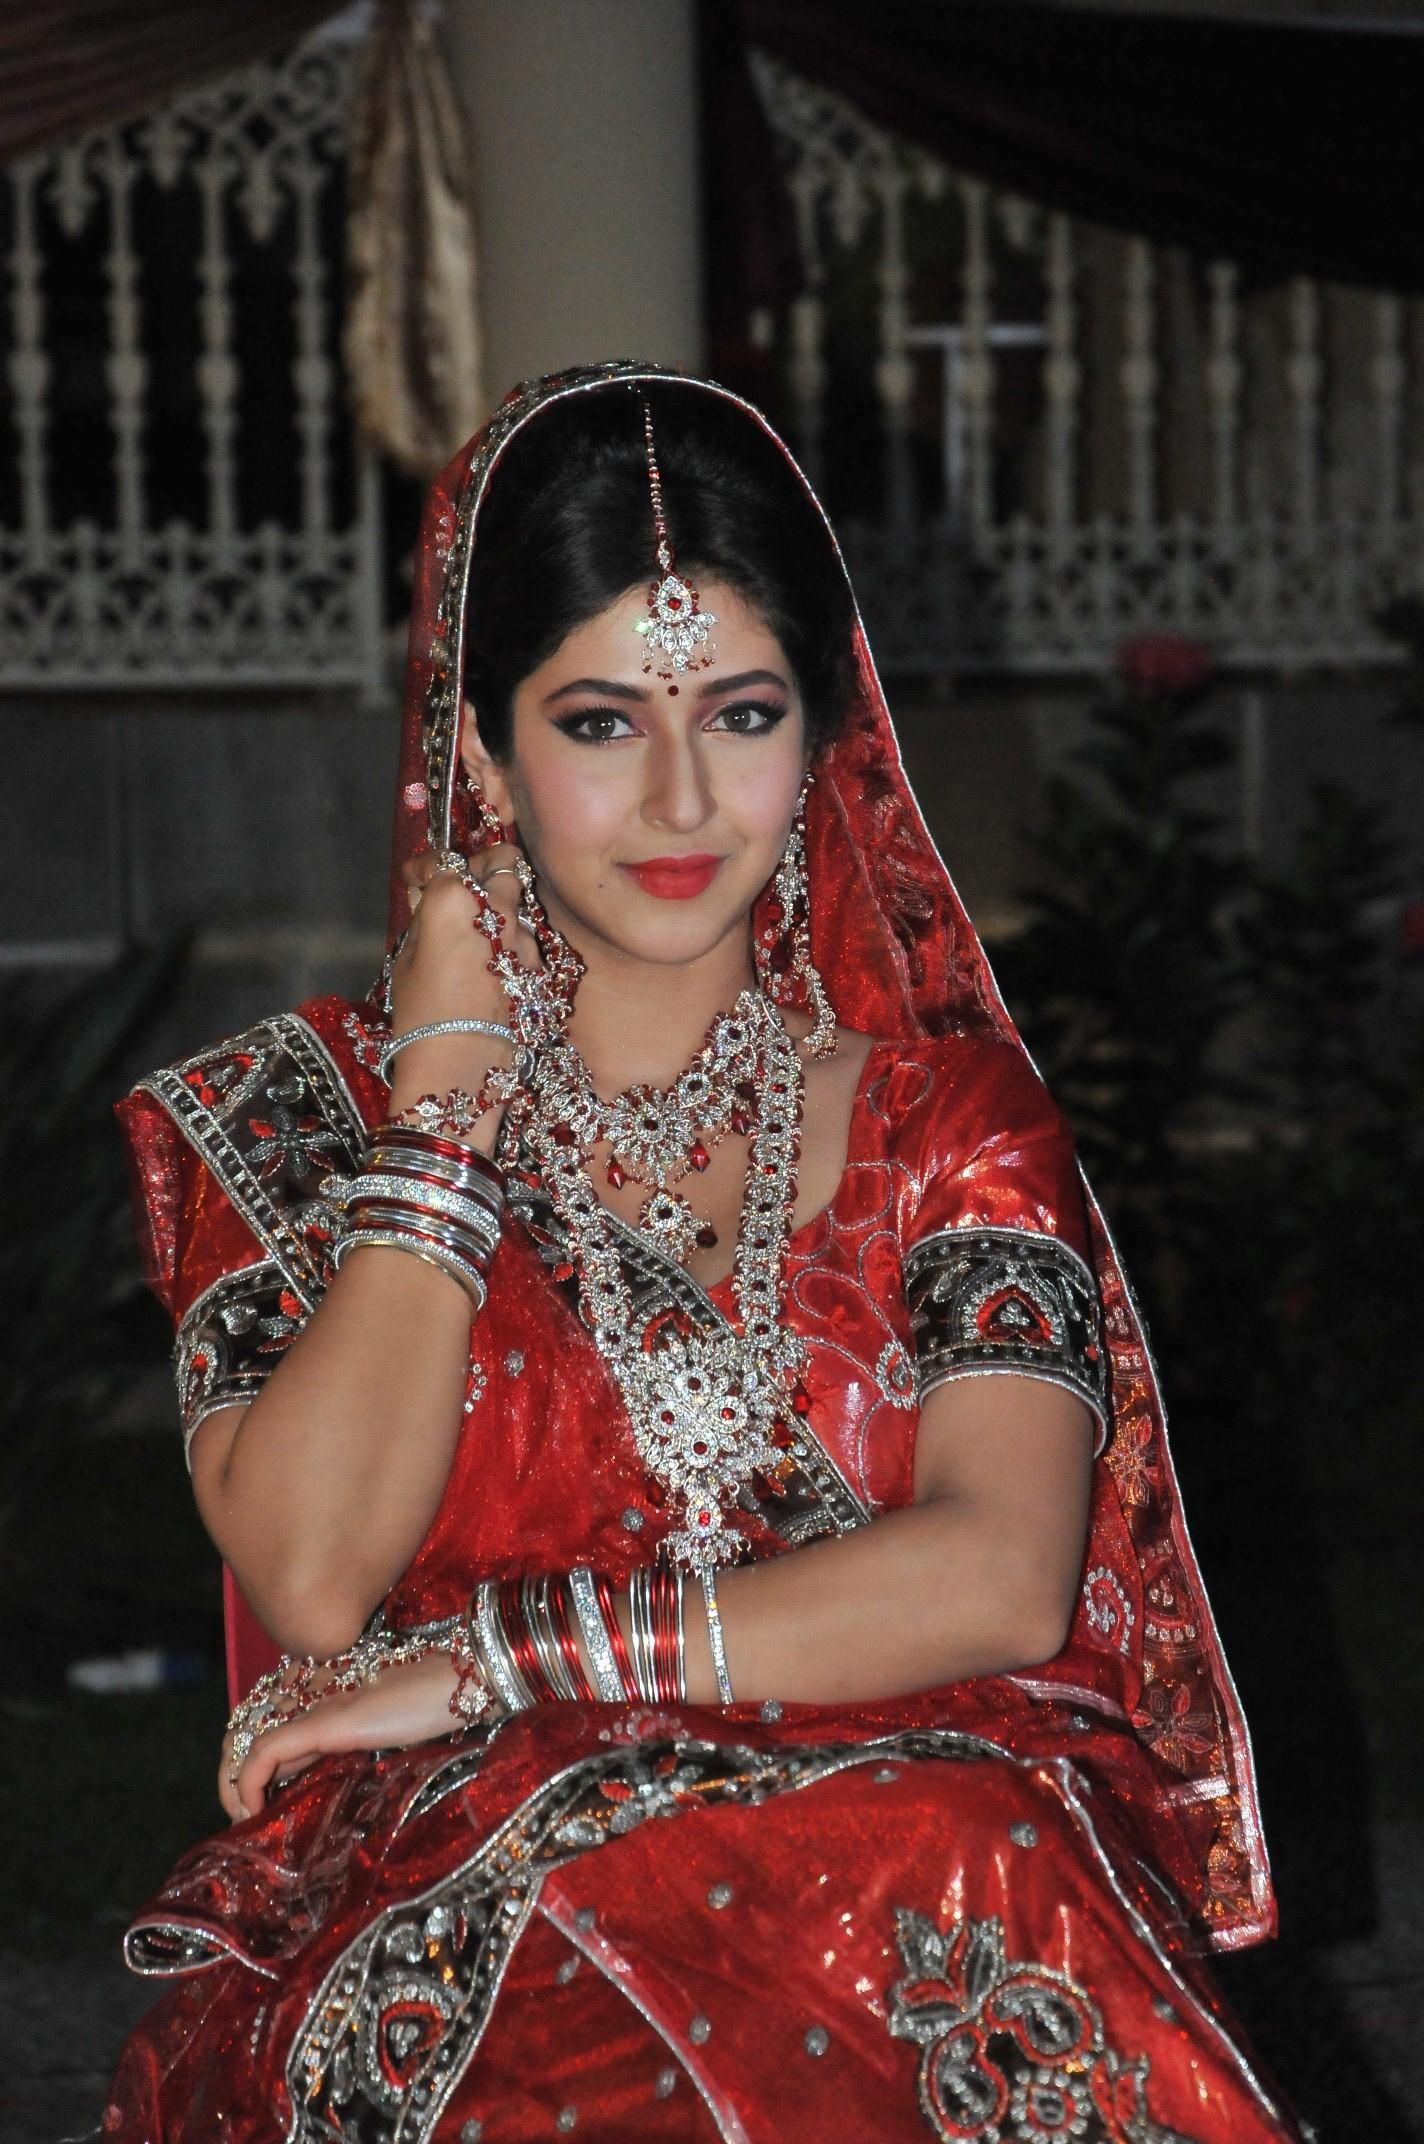 Not just bikini, Sonarika Bhadoria is the hottest bride in Saansein